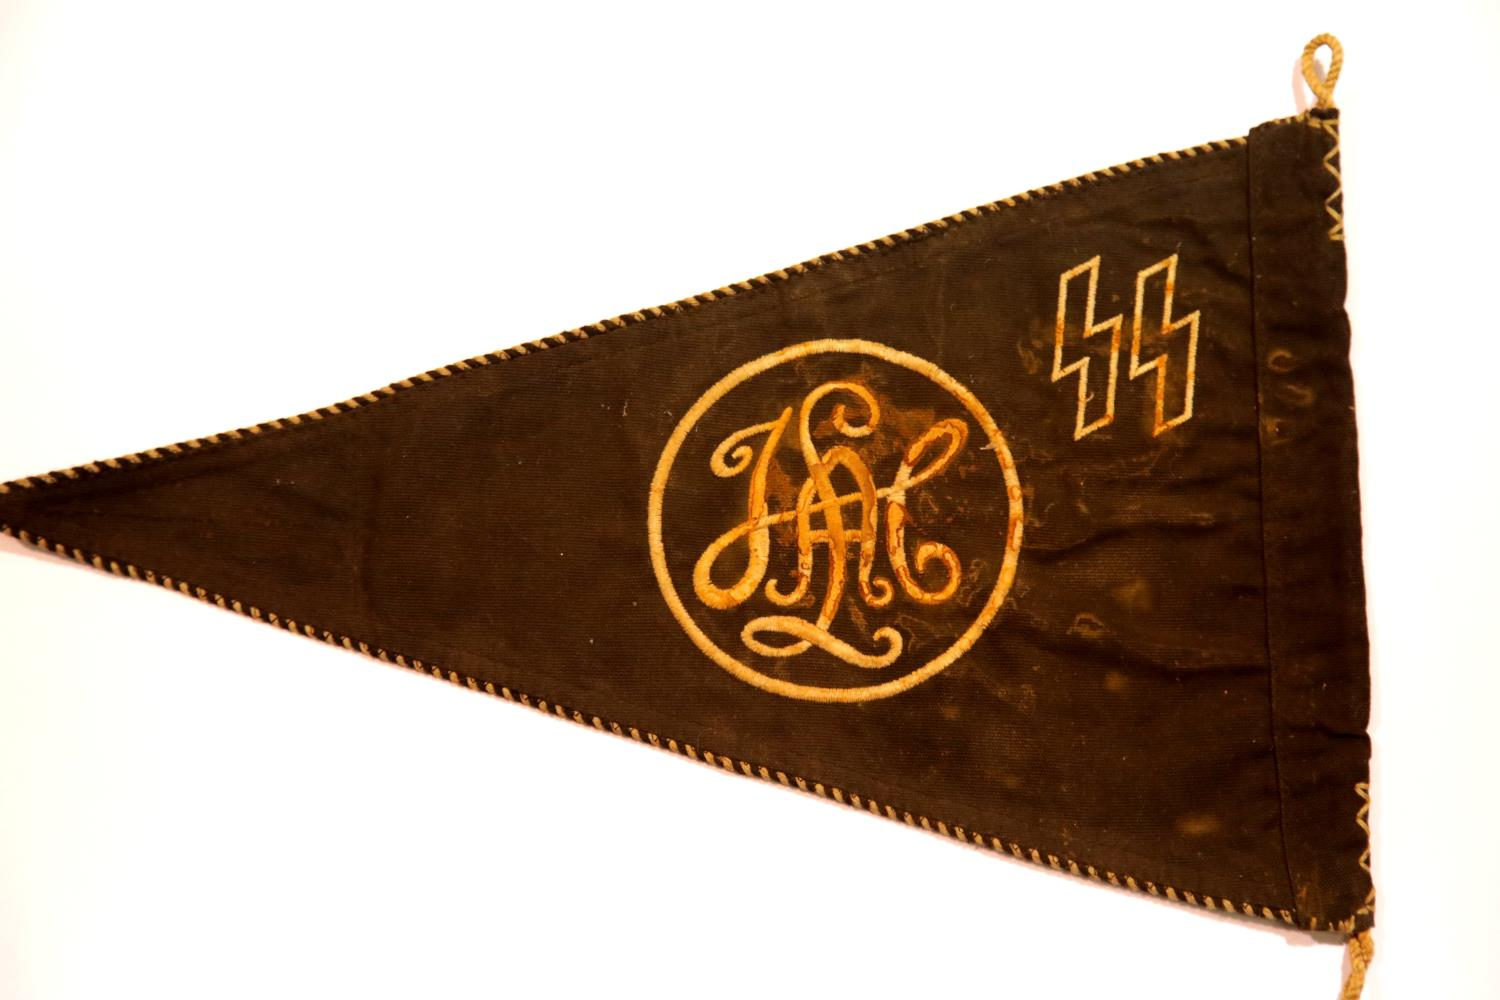 Lot 3023 - German SS type pennant embroidered 'LAH', L: 36 cm. P&P Group 1 (£14+VAT for the first lot and £1+